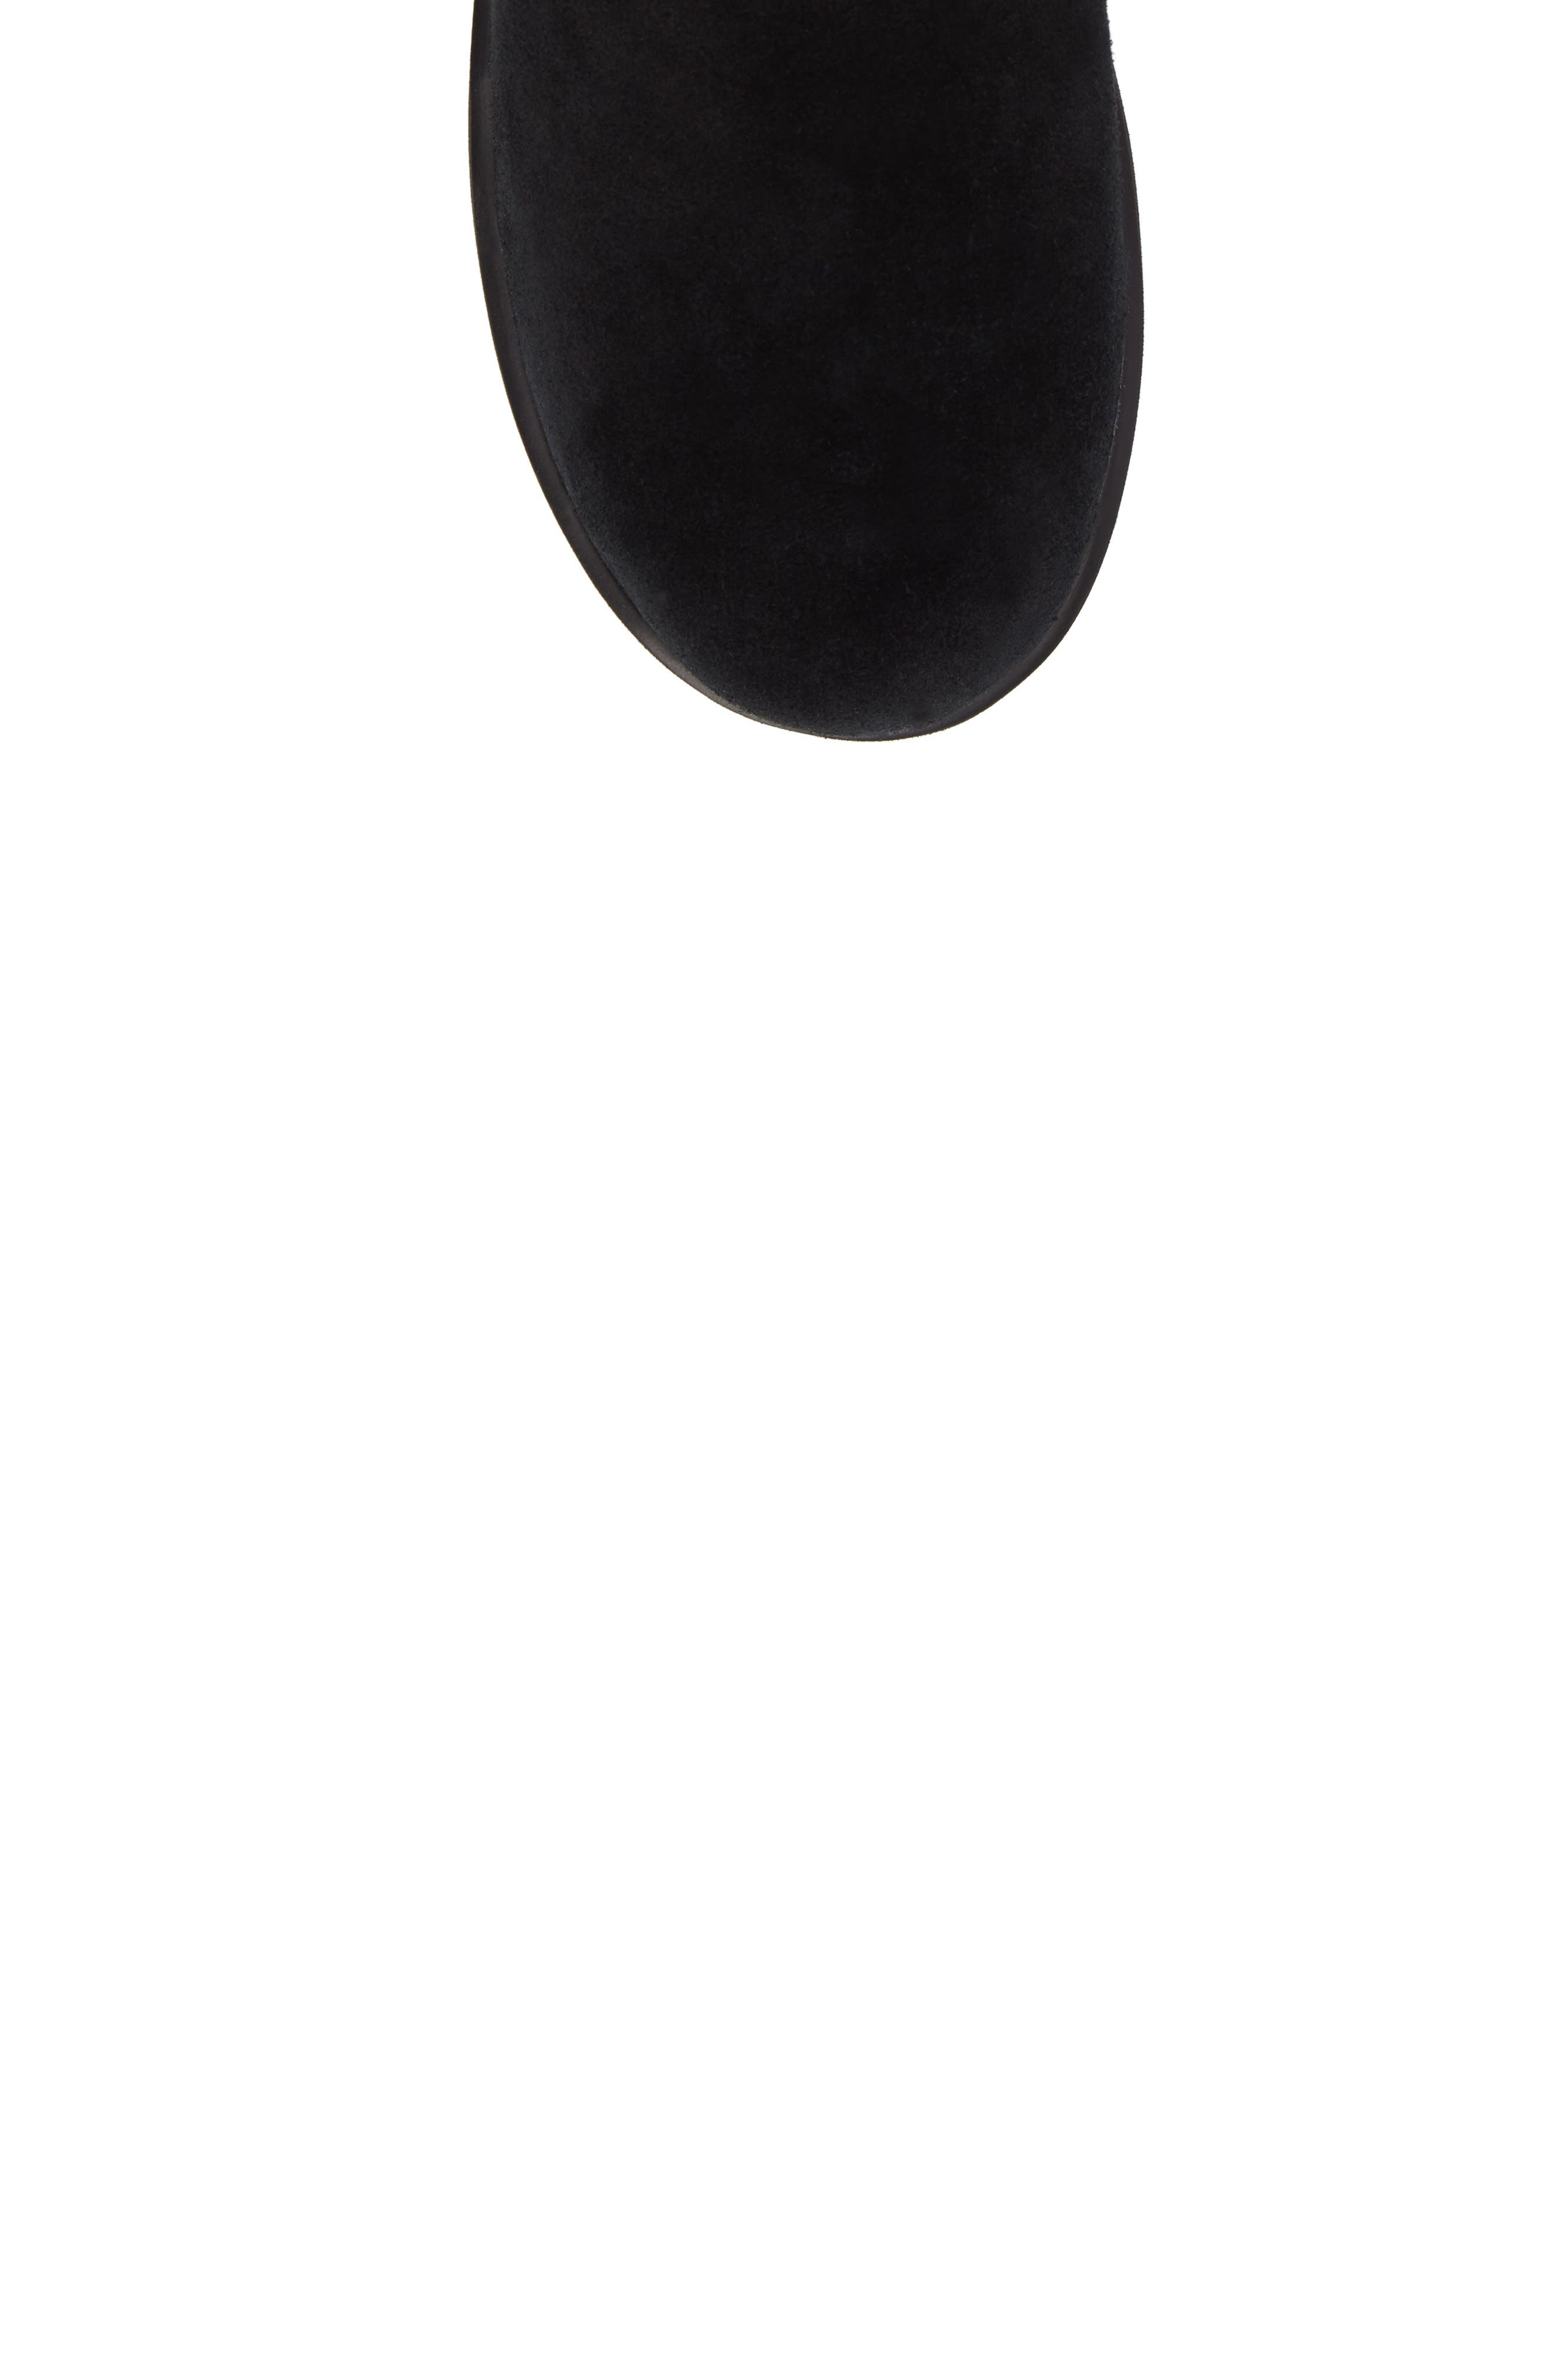 UGG<SUP>®</SUP>, Classic Short Waterproof Boot, Alternate thumbnail 5, color, BLACK SUEDE